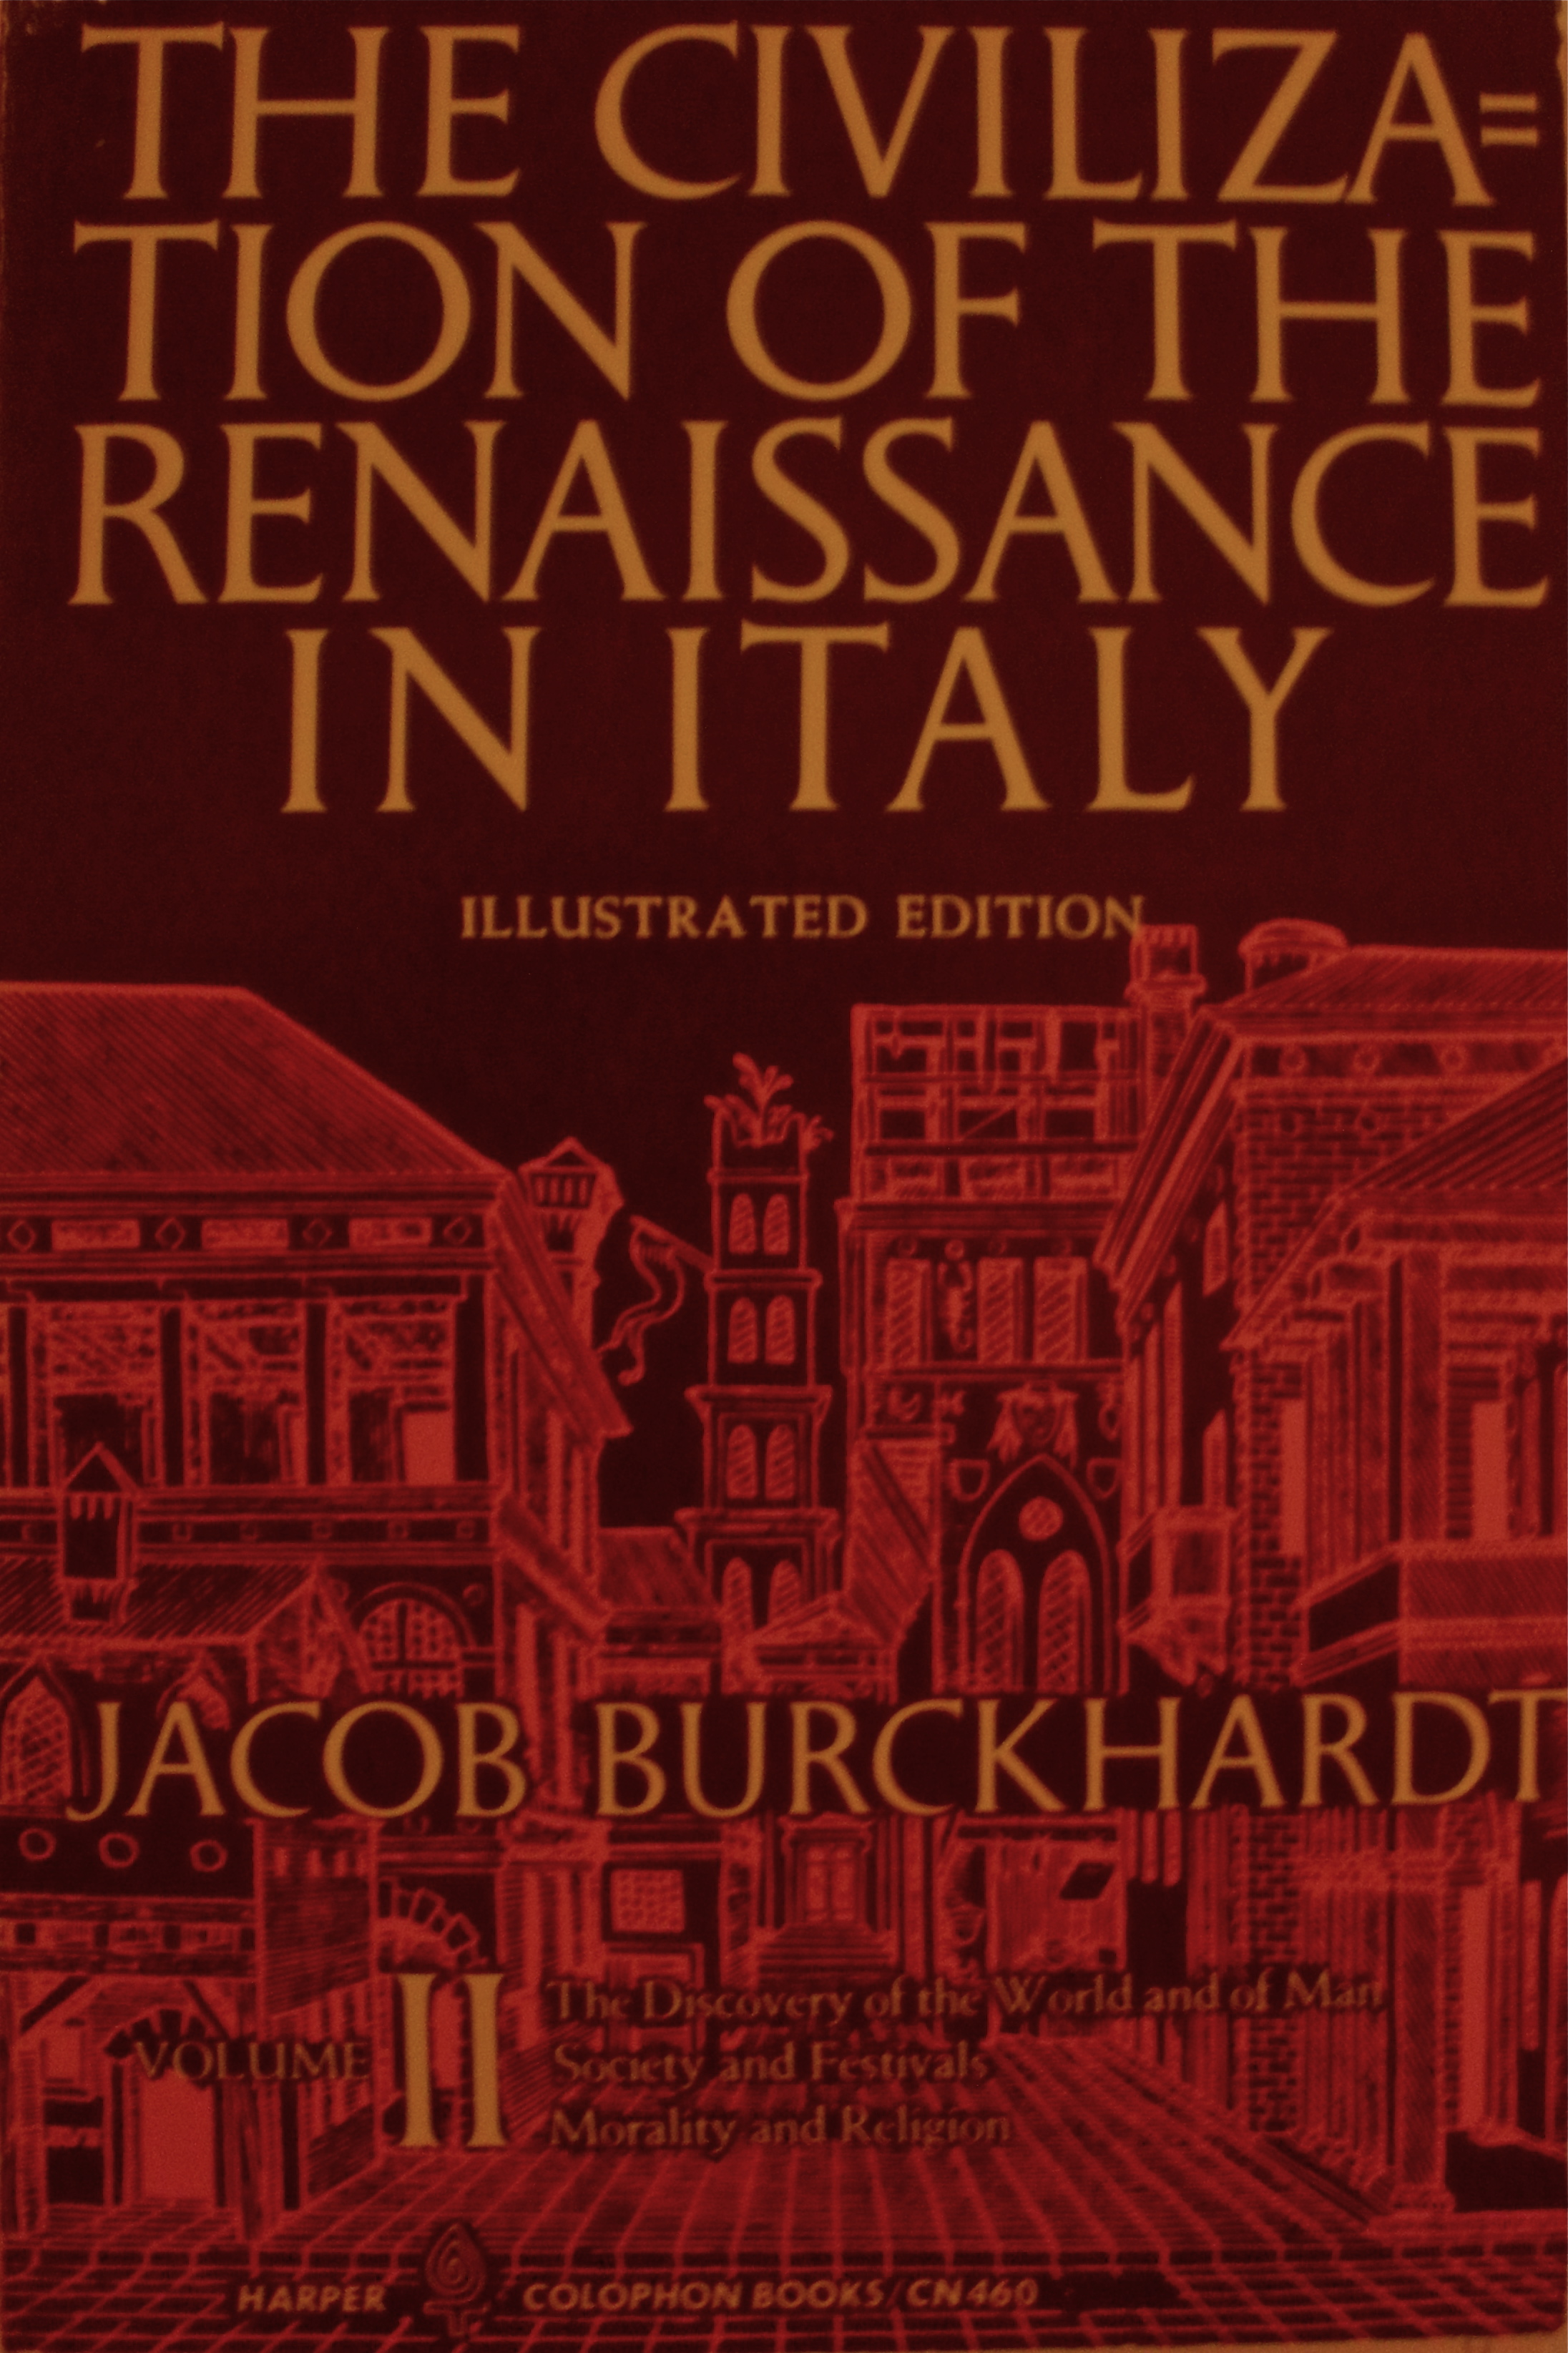 Civilization of the Renaissance in Italy. Volume II